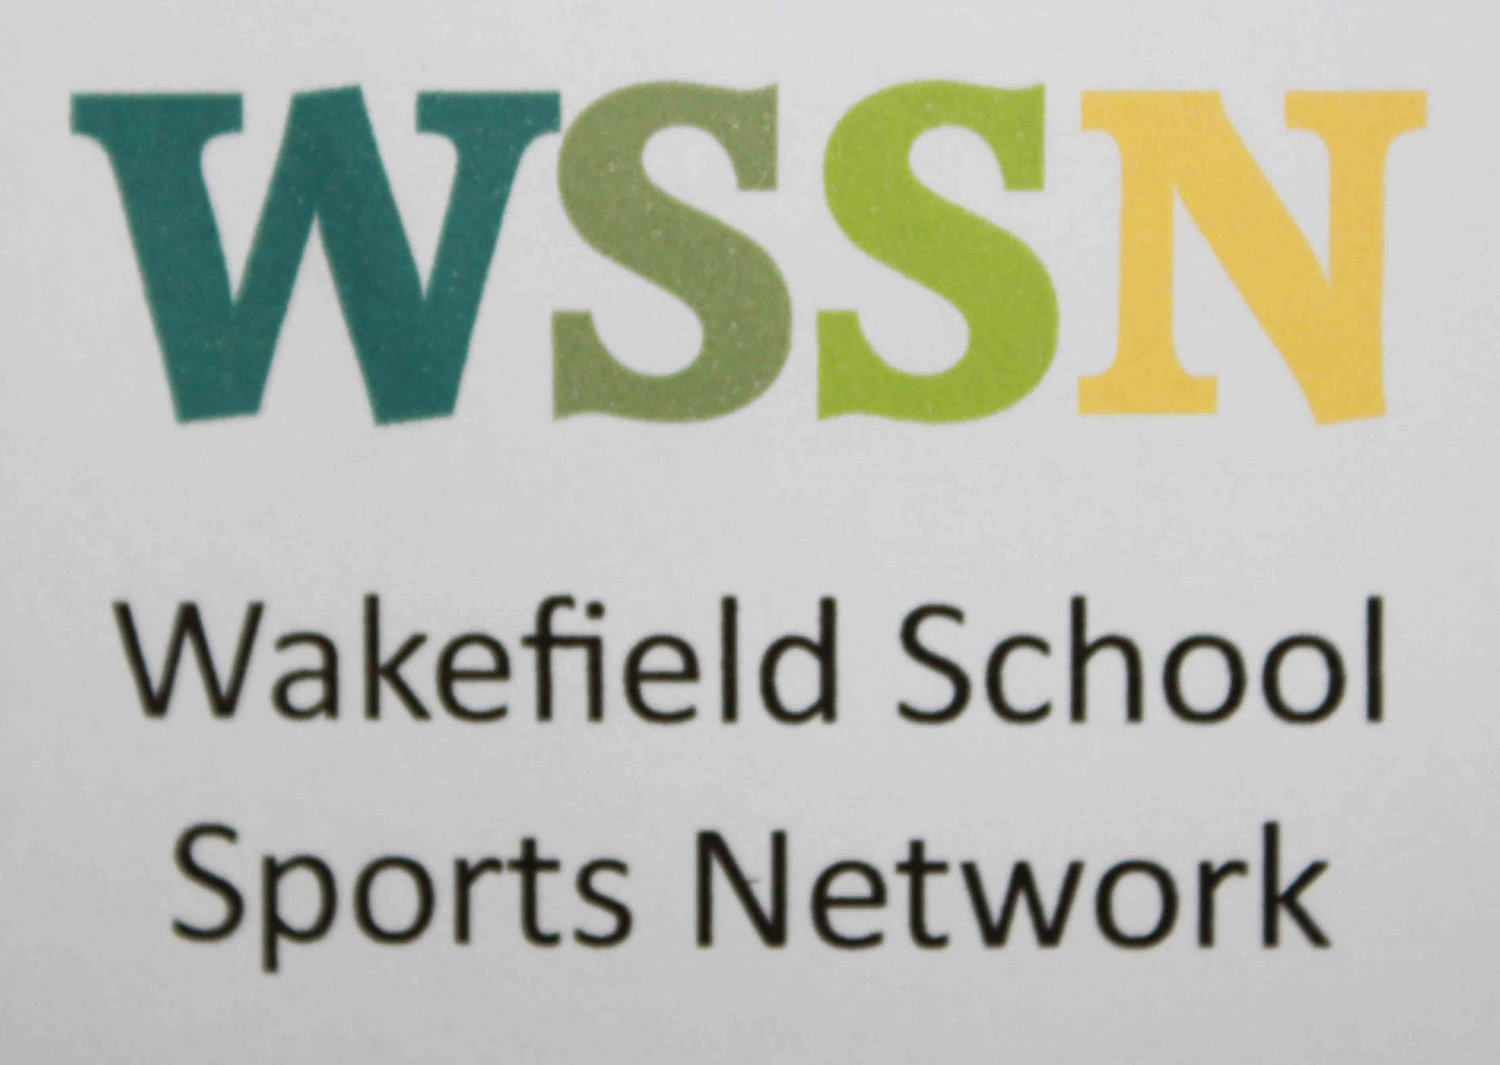 Wakefield School Sports Network